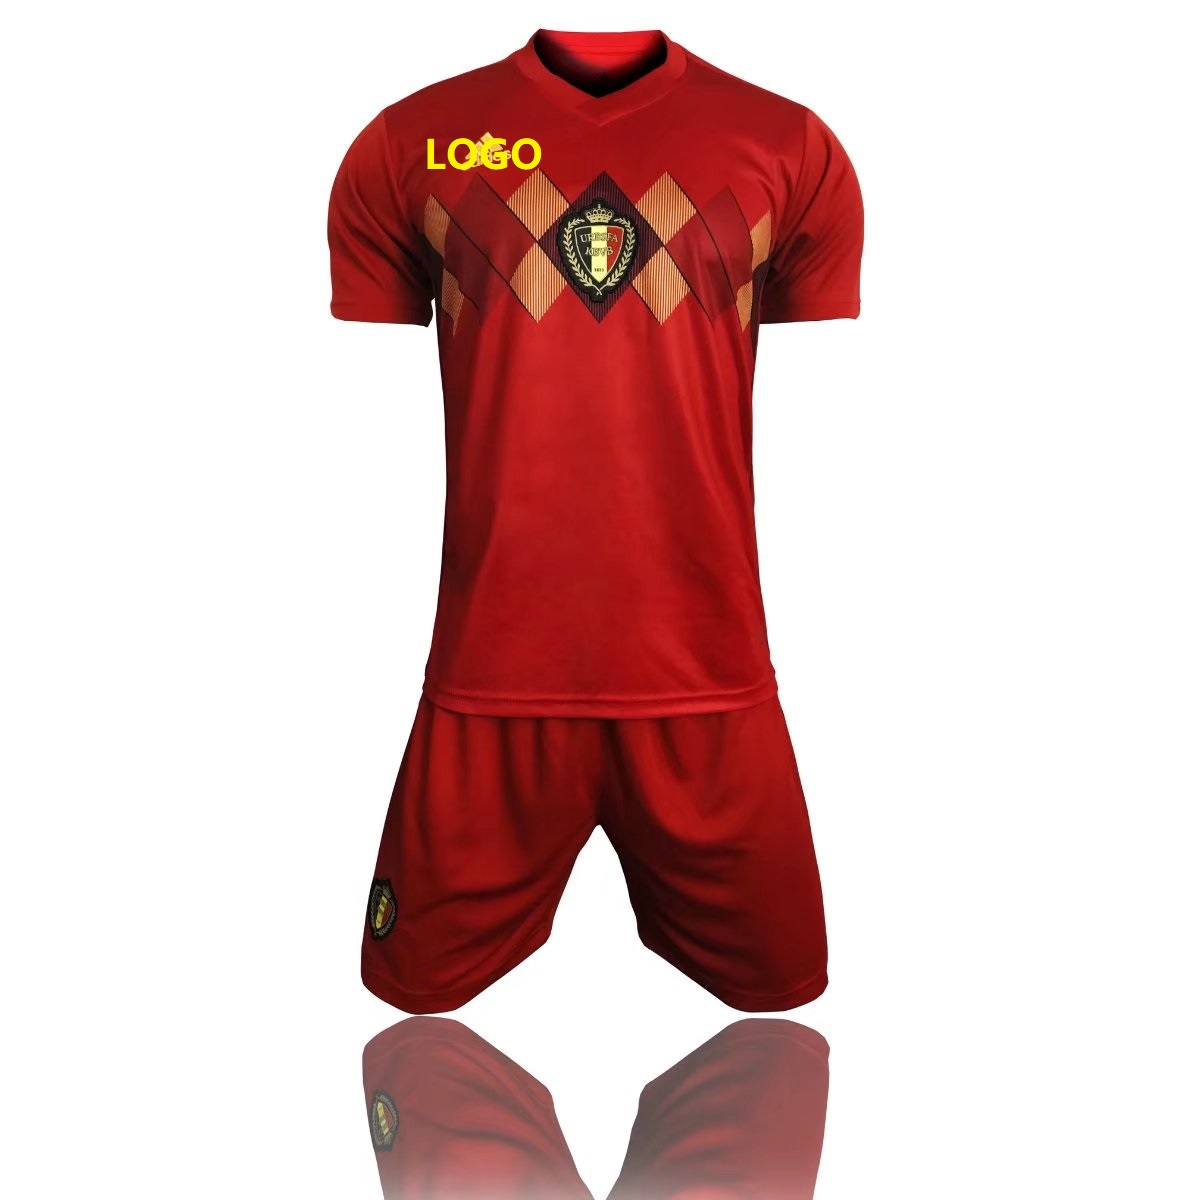 7a32579982f 2018 Russia World Cup Belgium Home Adult Soccer Uniform Men Football Kits  cheap soccer jerseys